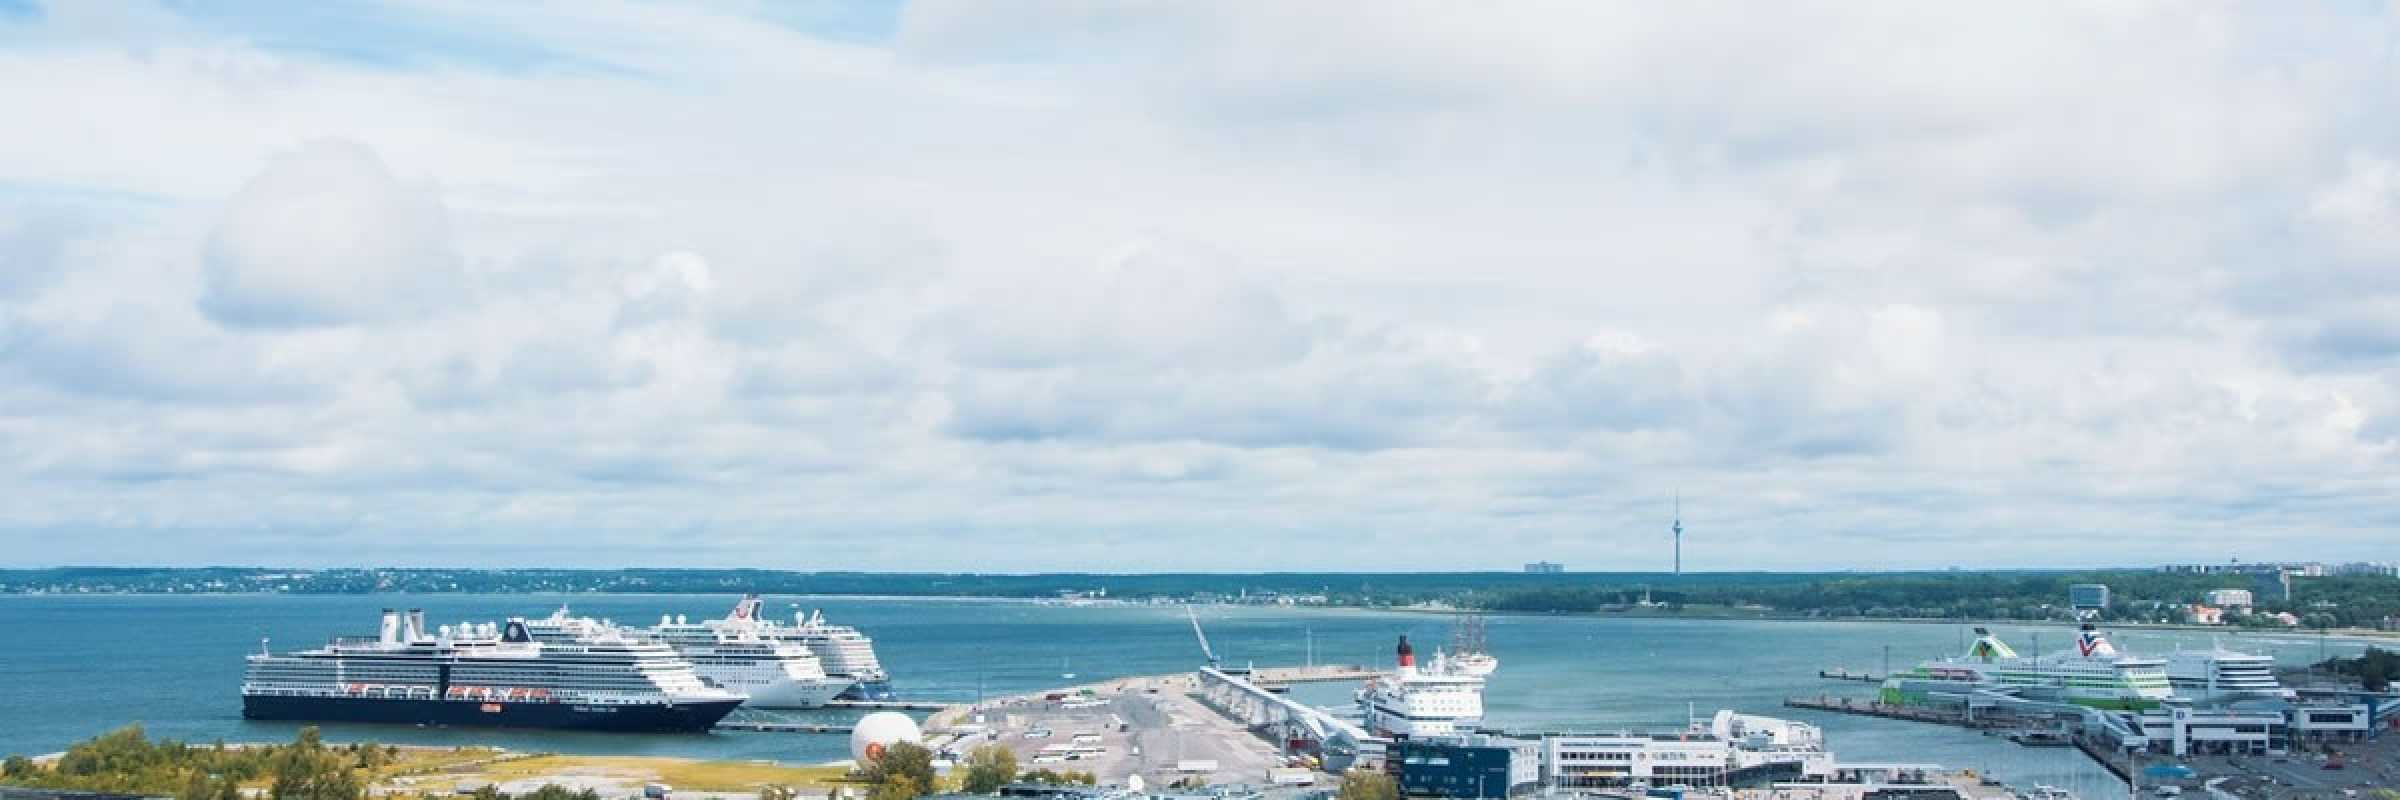 Tallinn to give green ships discount on tonnage fees